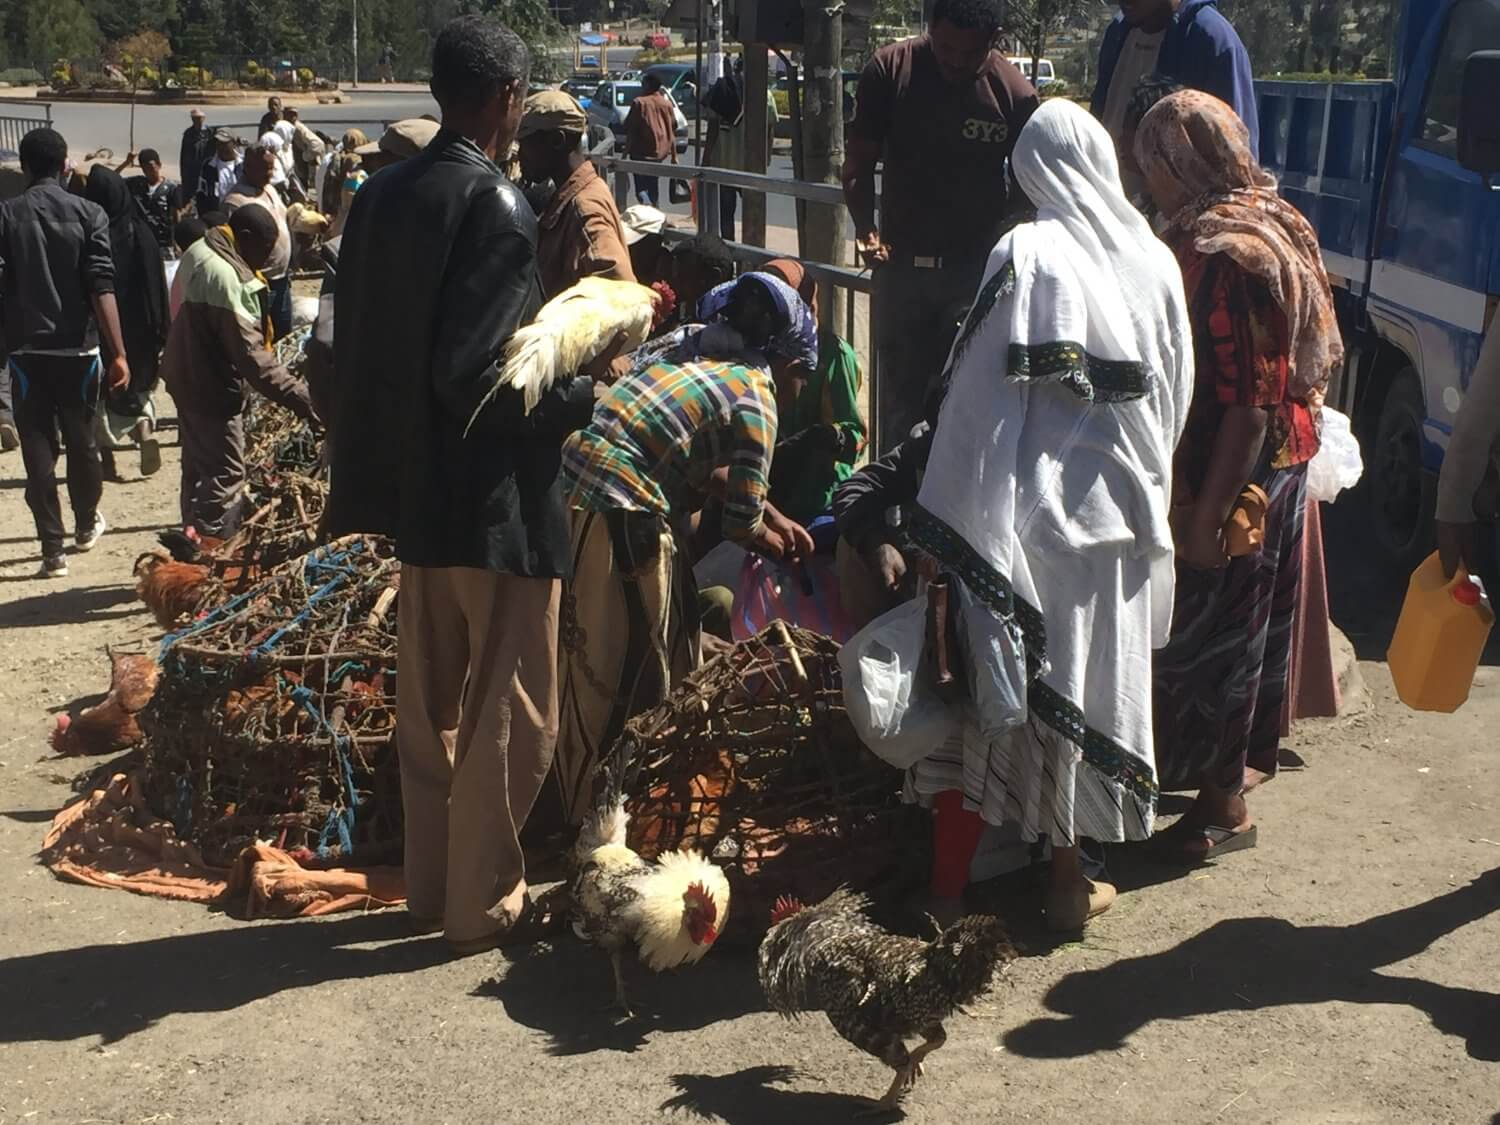 Chickens for sale on street corners